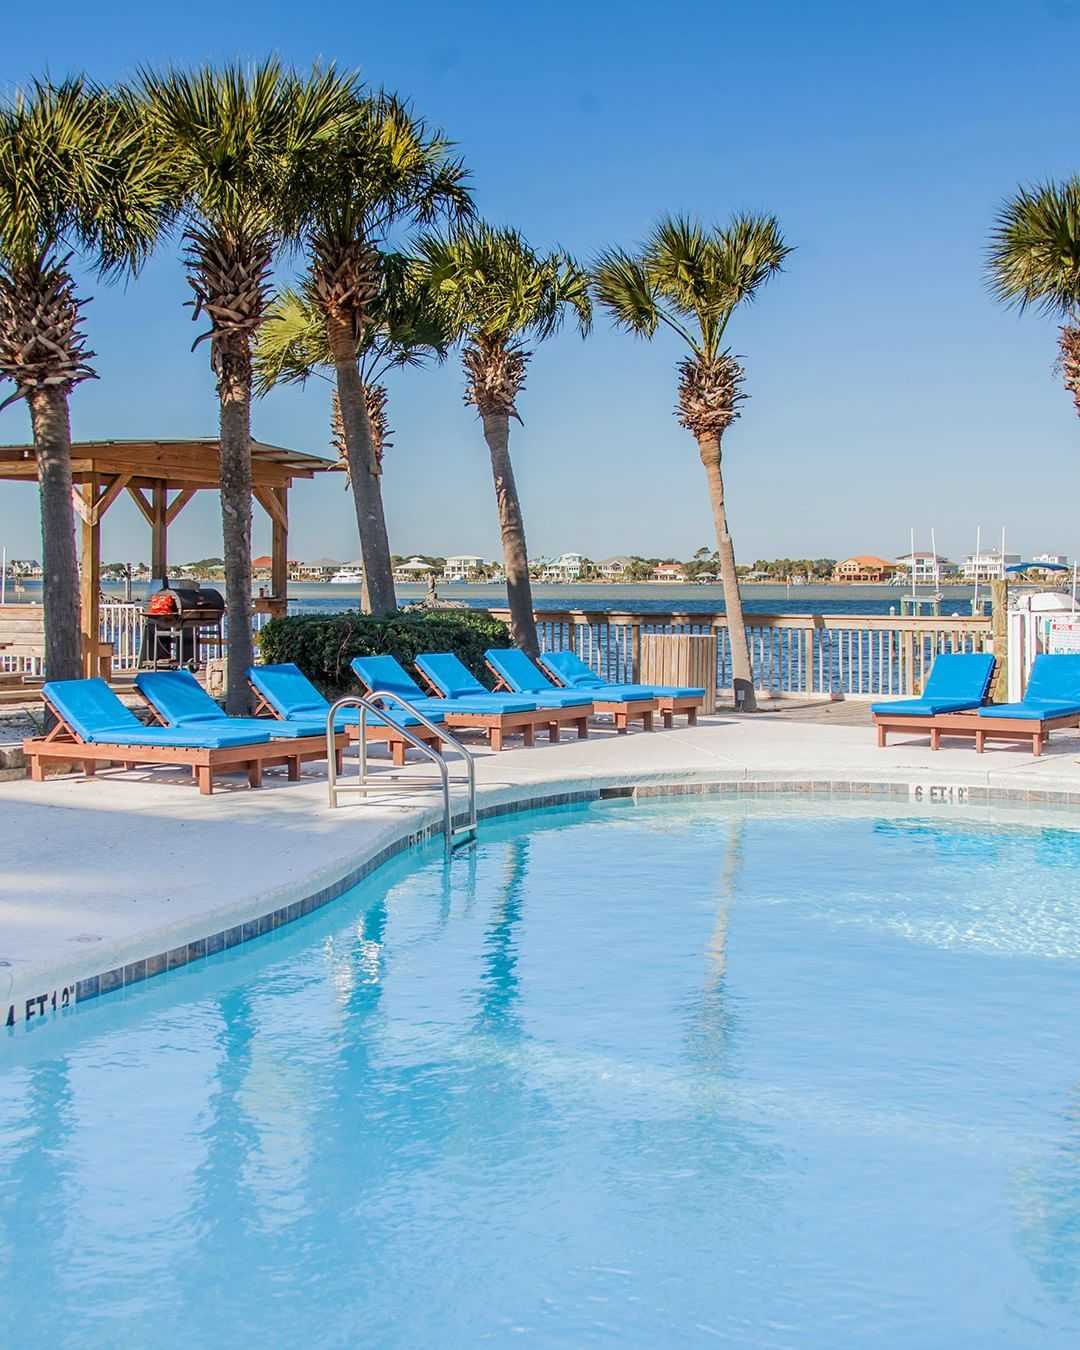 Check In And Chill Out Sands Hotel Surfing Pensacola Beach